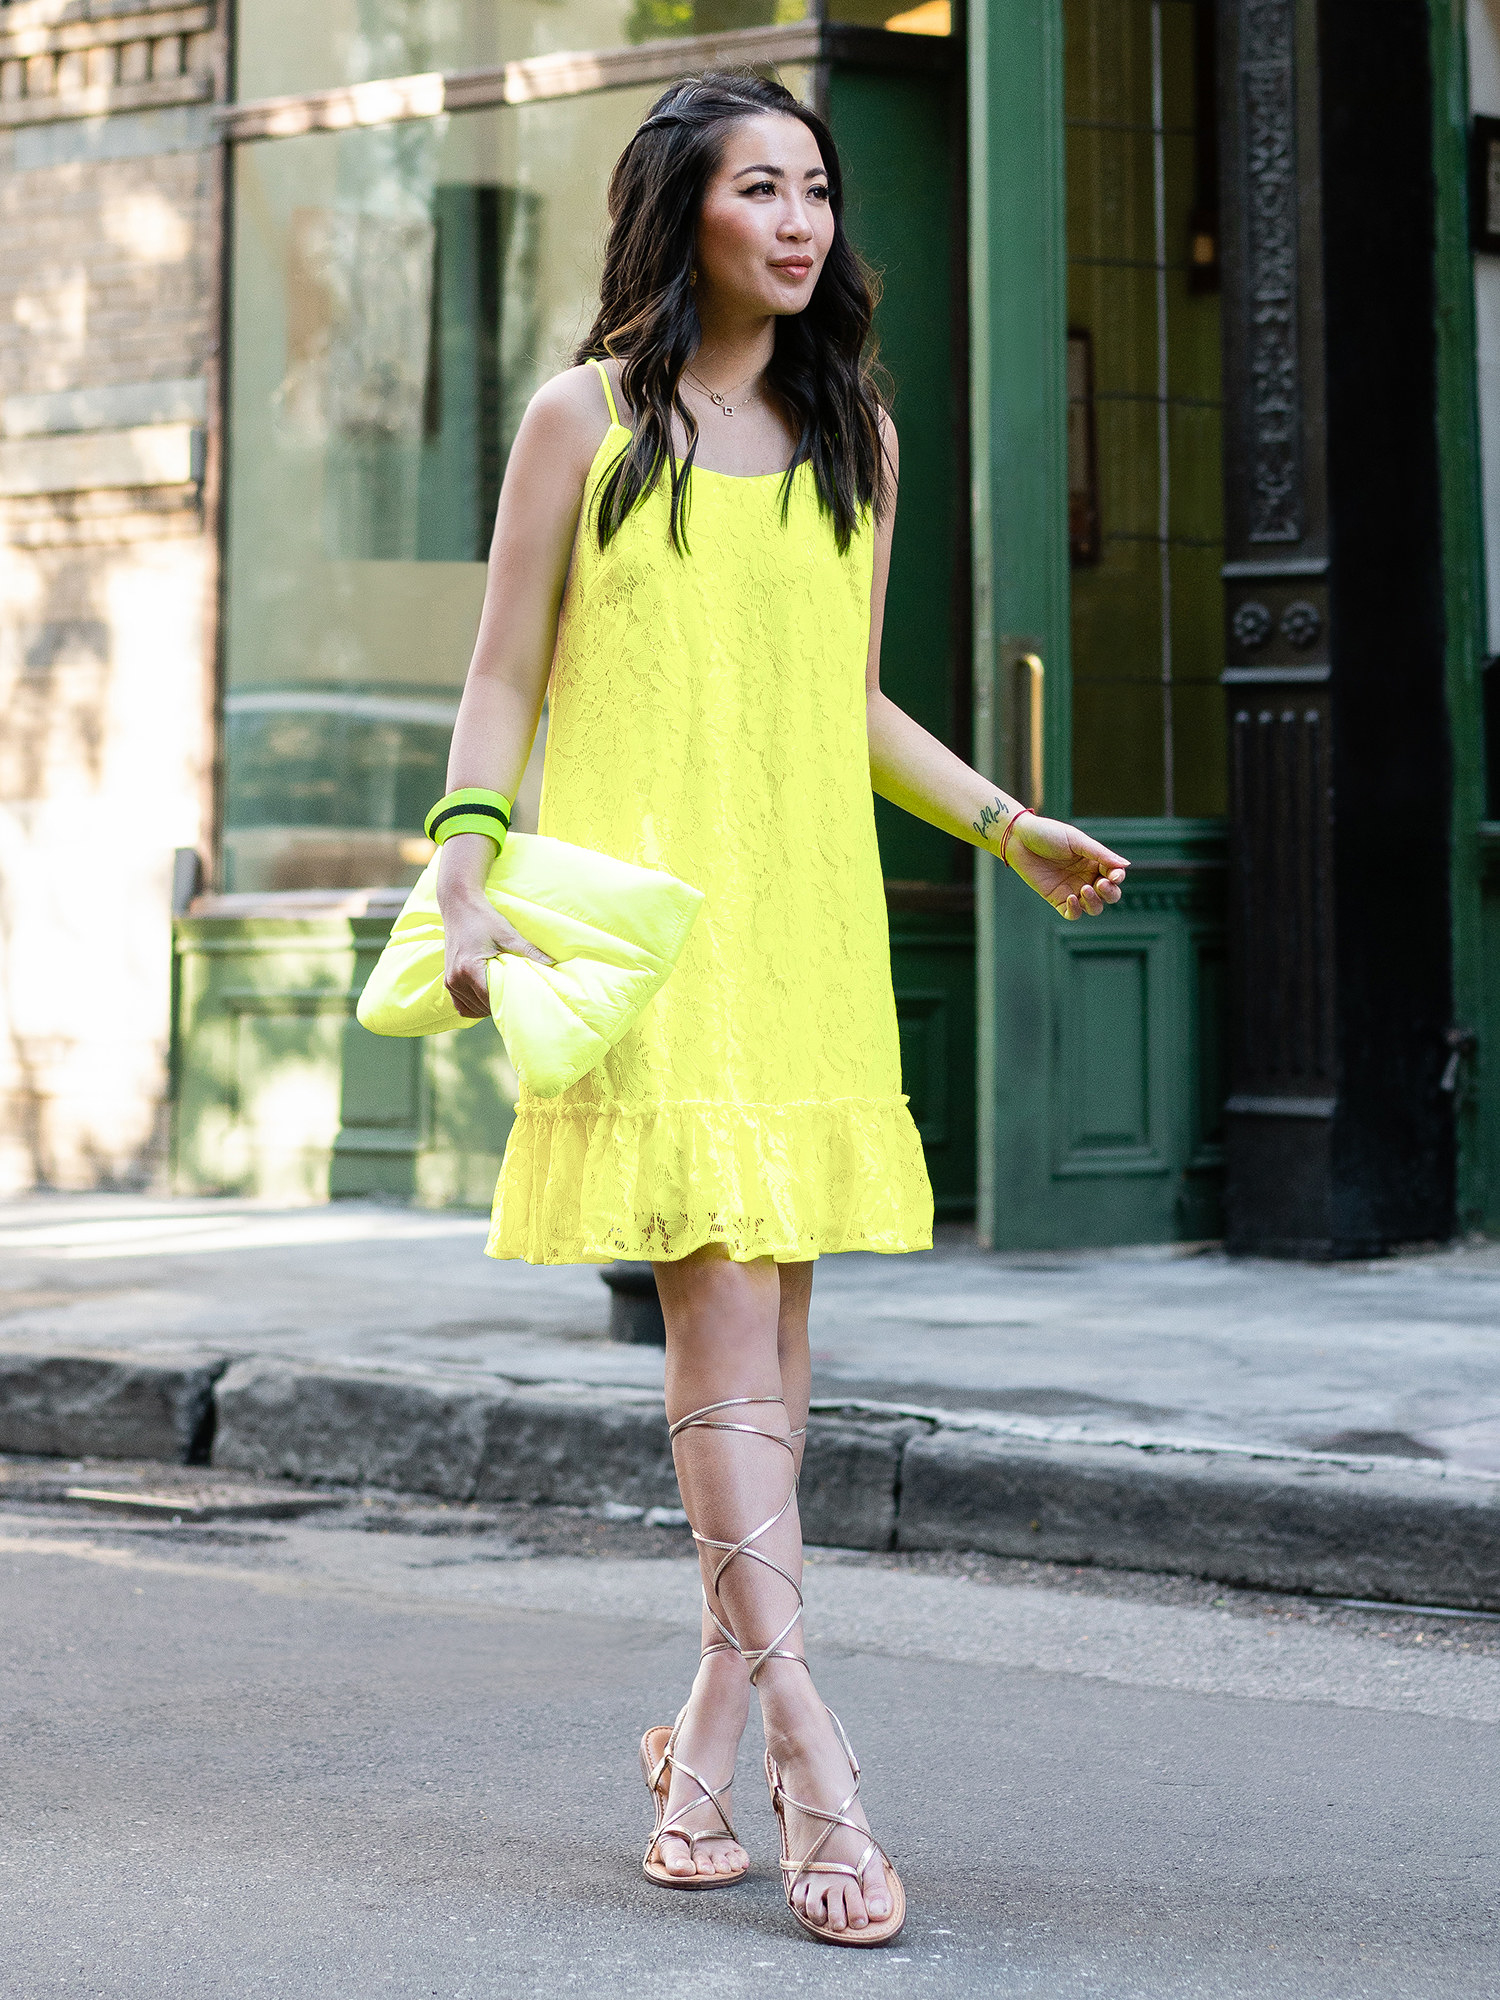 person wearing a neon yellow dress while walking down the street